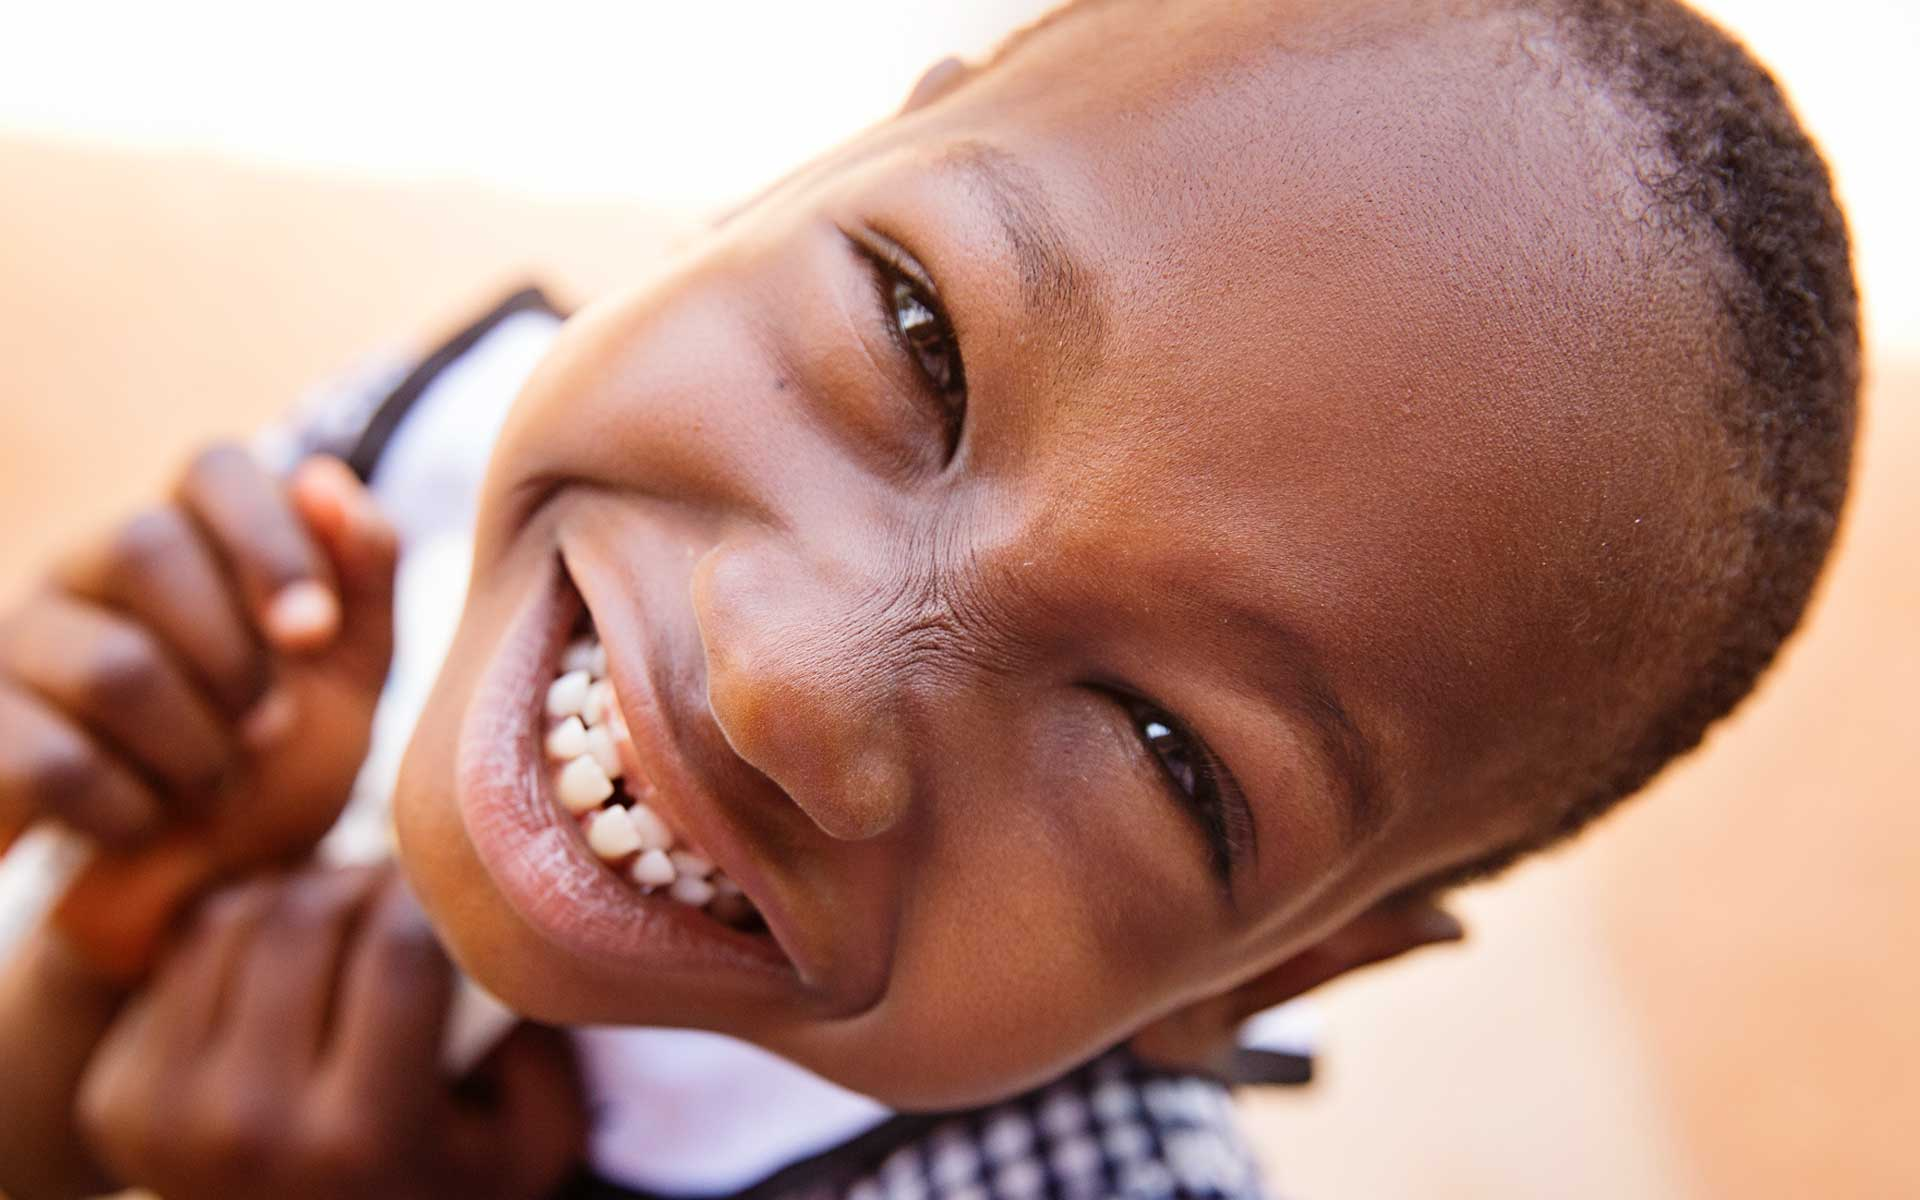 A girl from Burkina Faso smiling